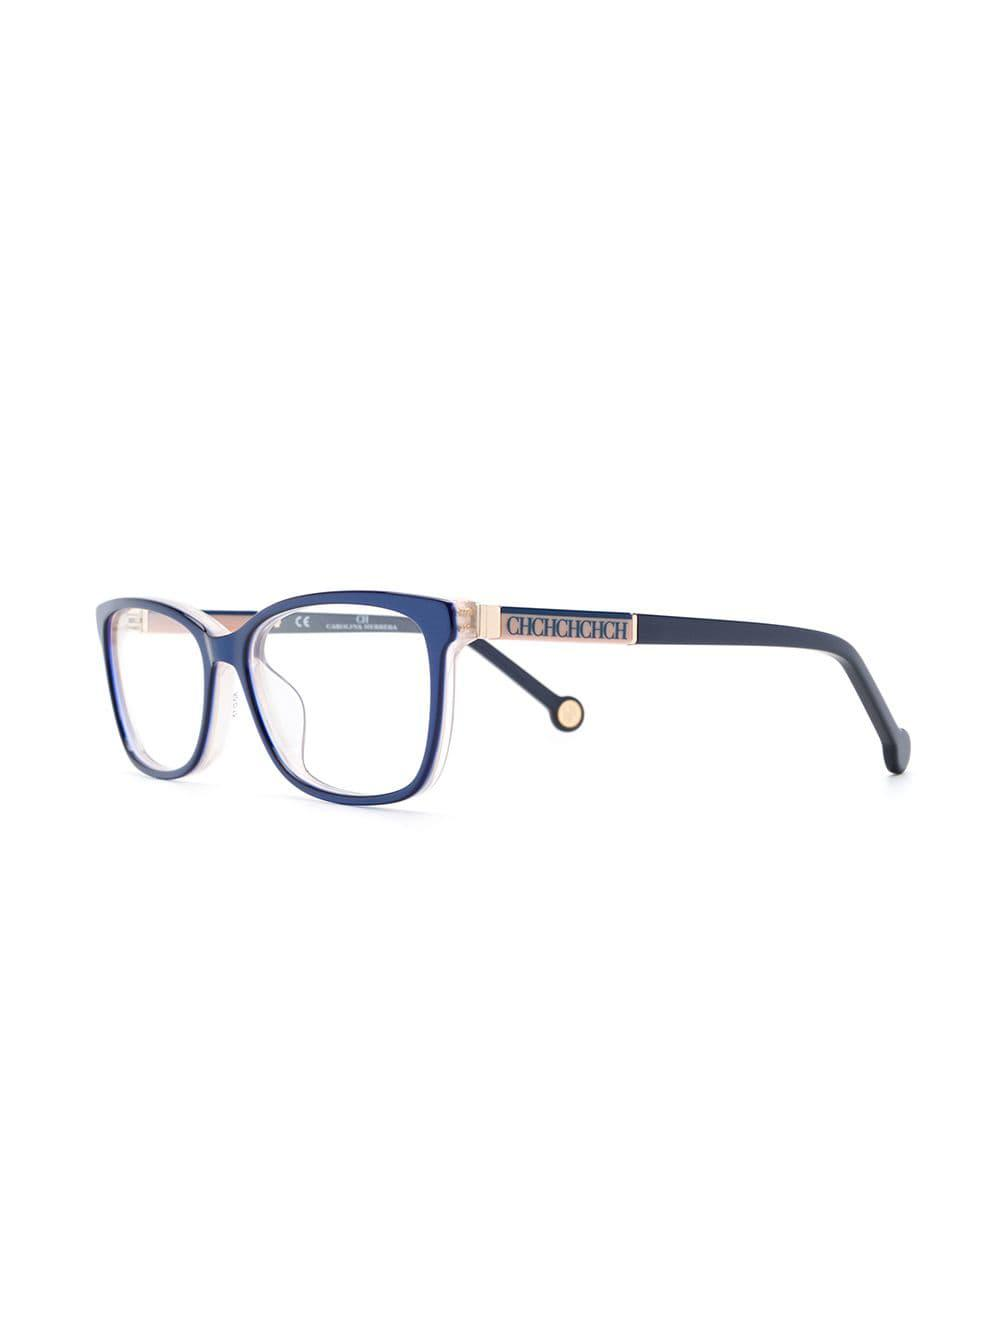 dfe5133b0fd Ch By Carolina Herrera Square Frame Glasses in Blue - Lyst